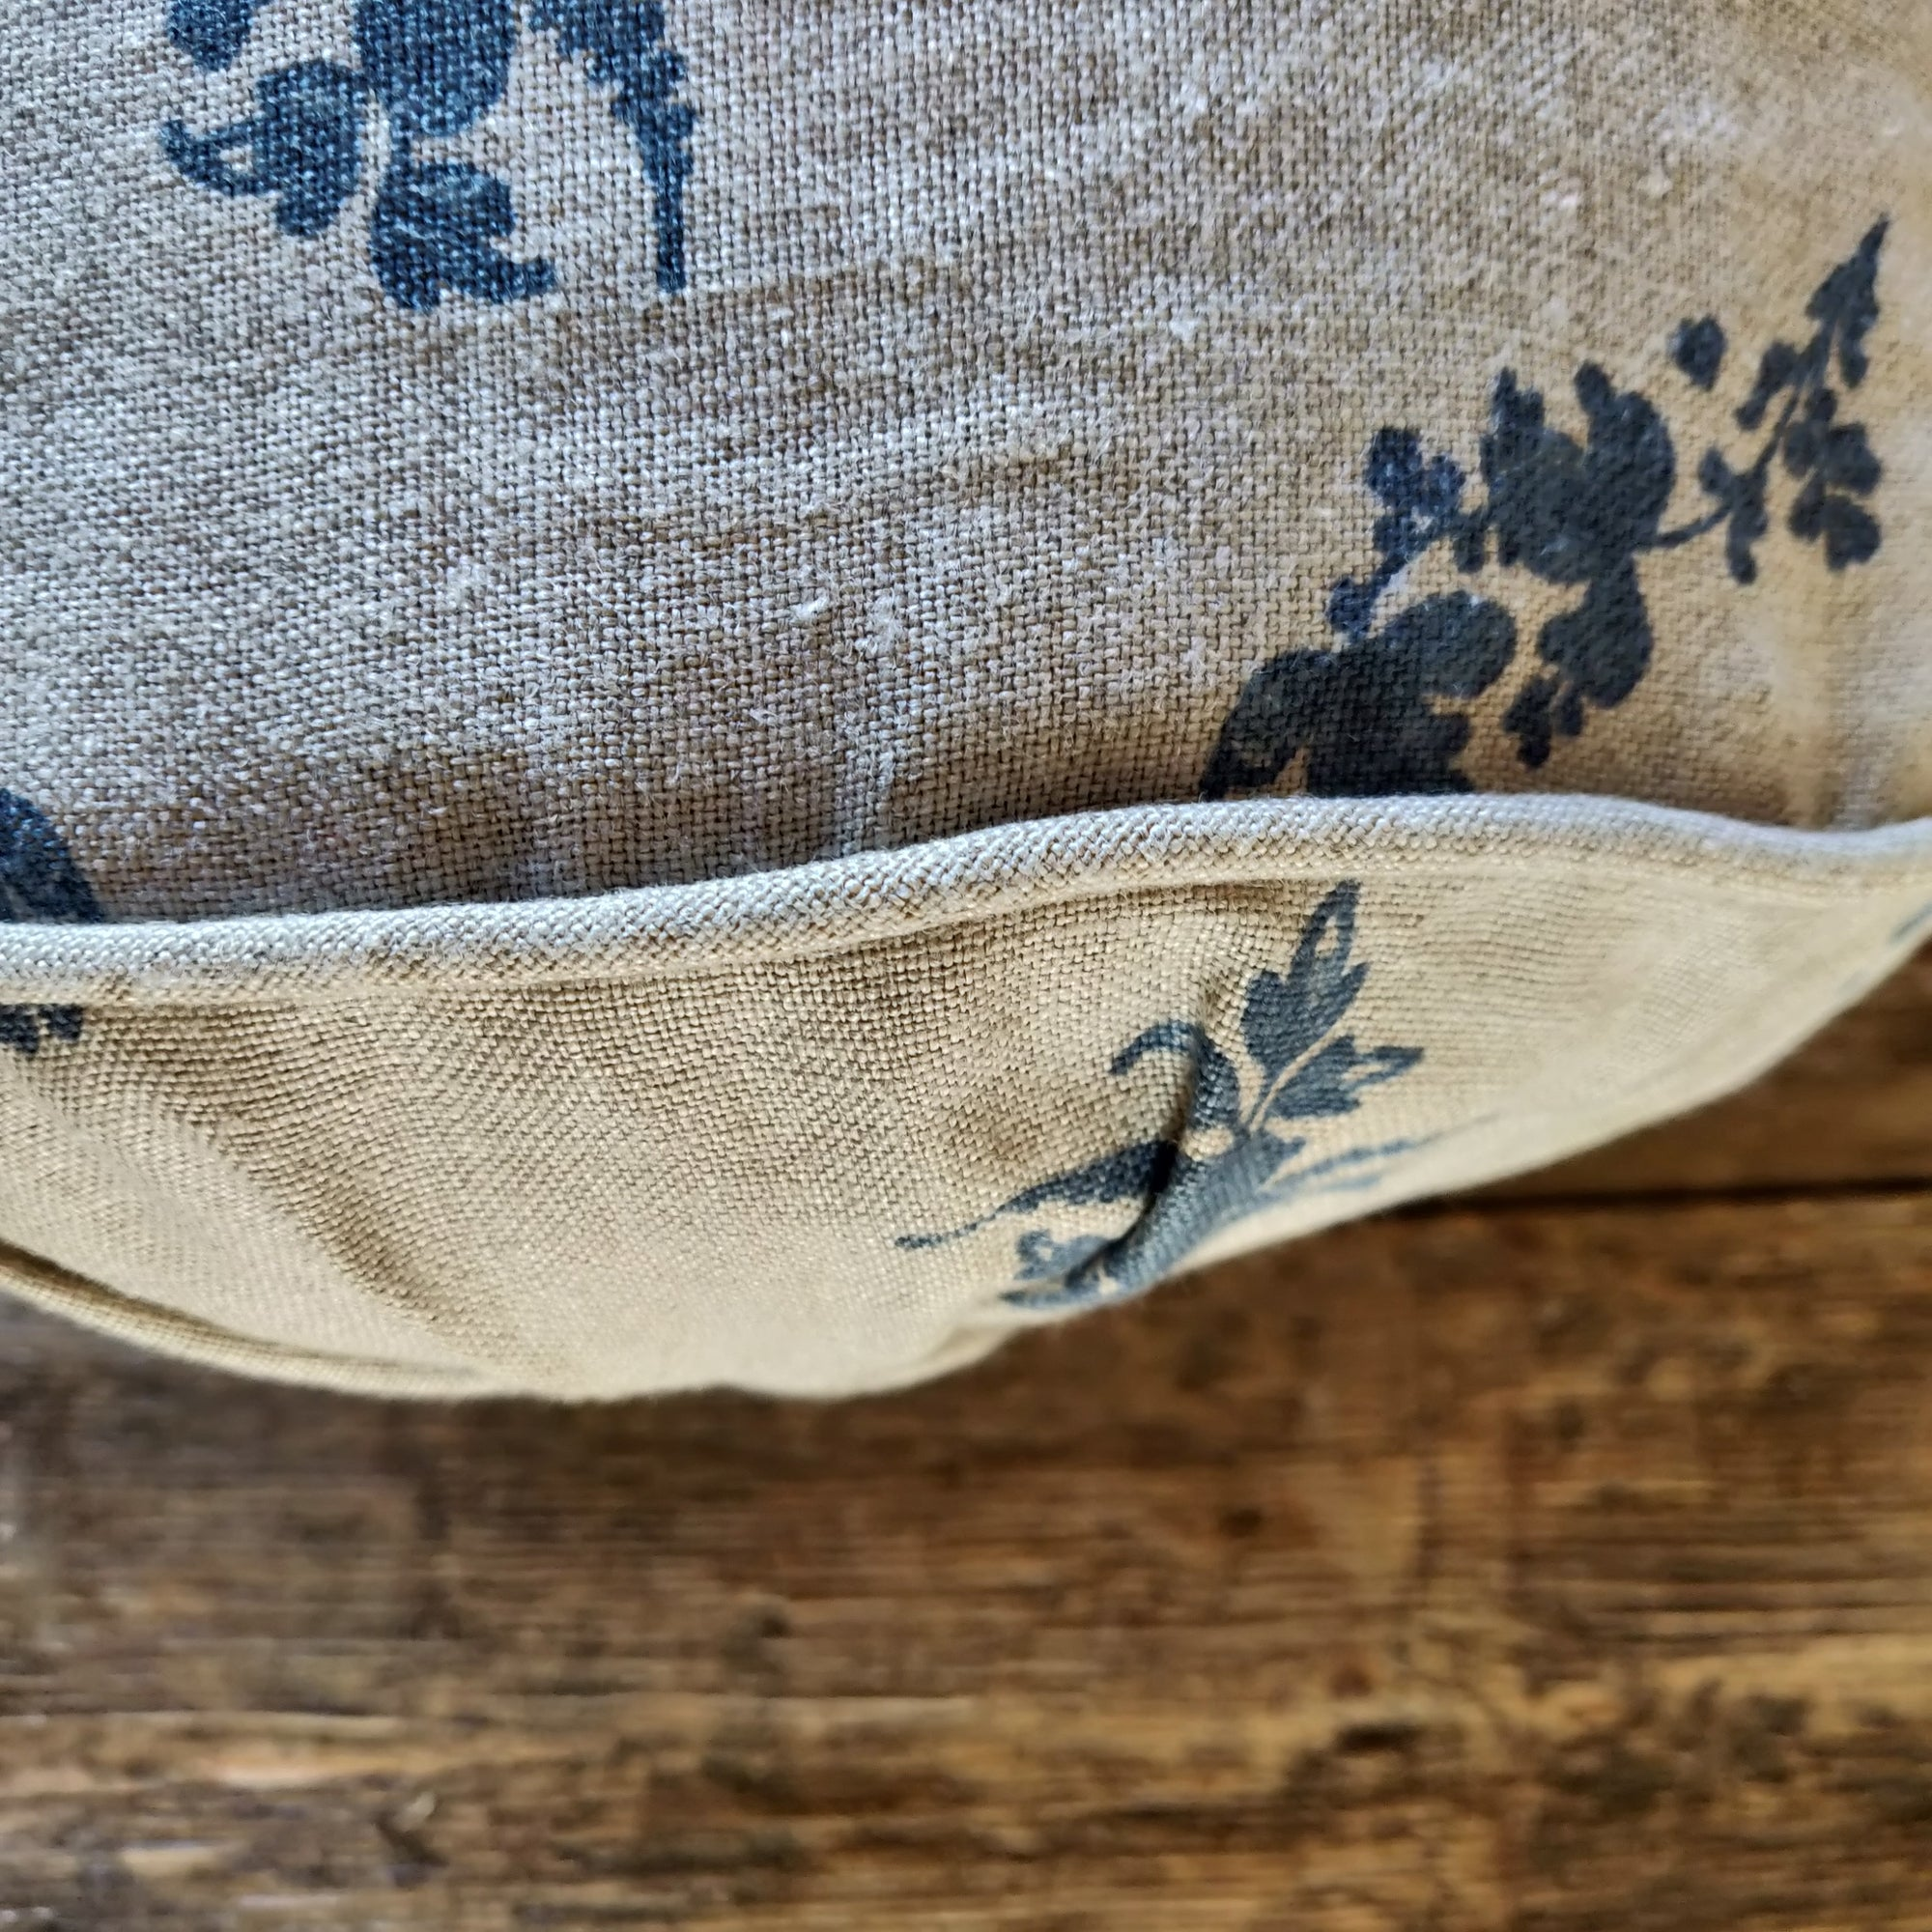 Piped Linen Bolster Cushion/ Trifolium Wreath Midnight on Natural